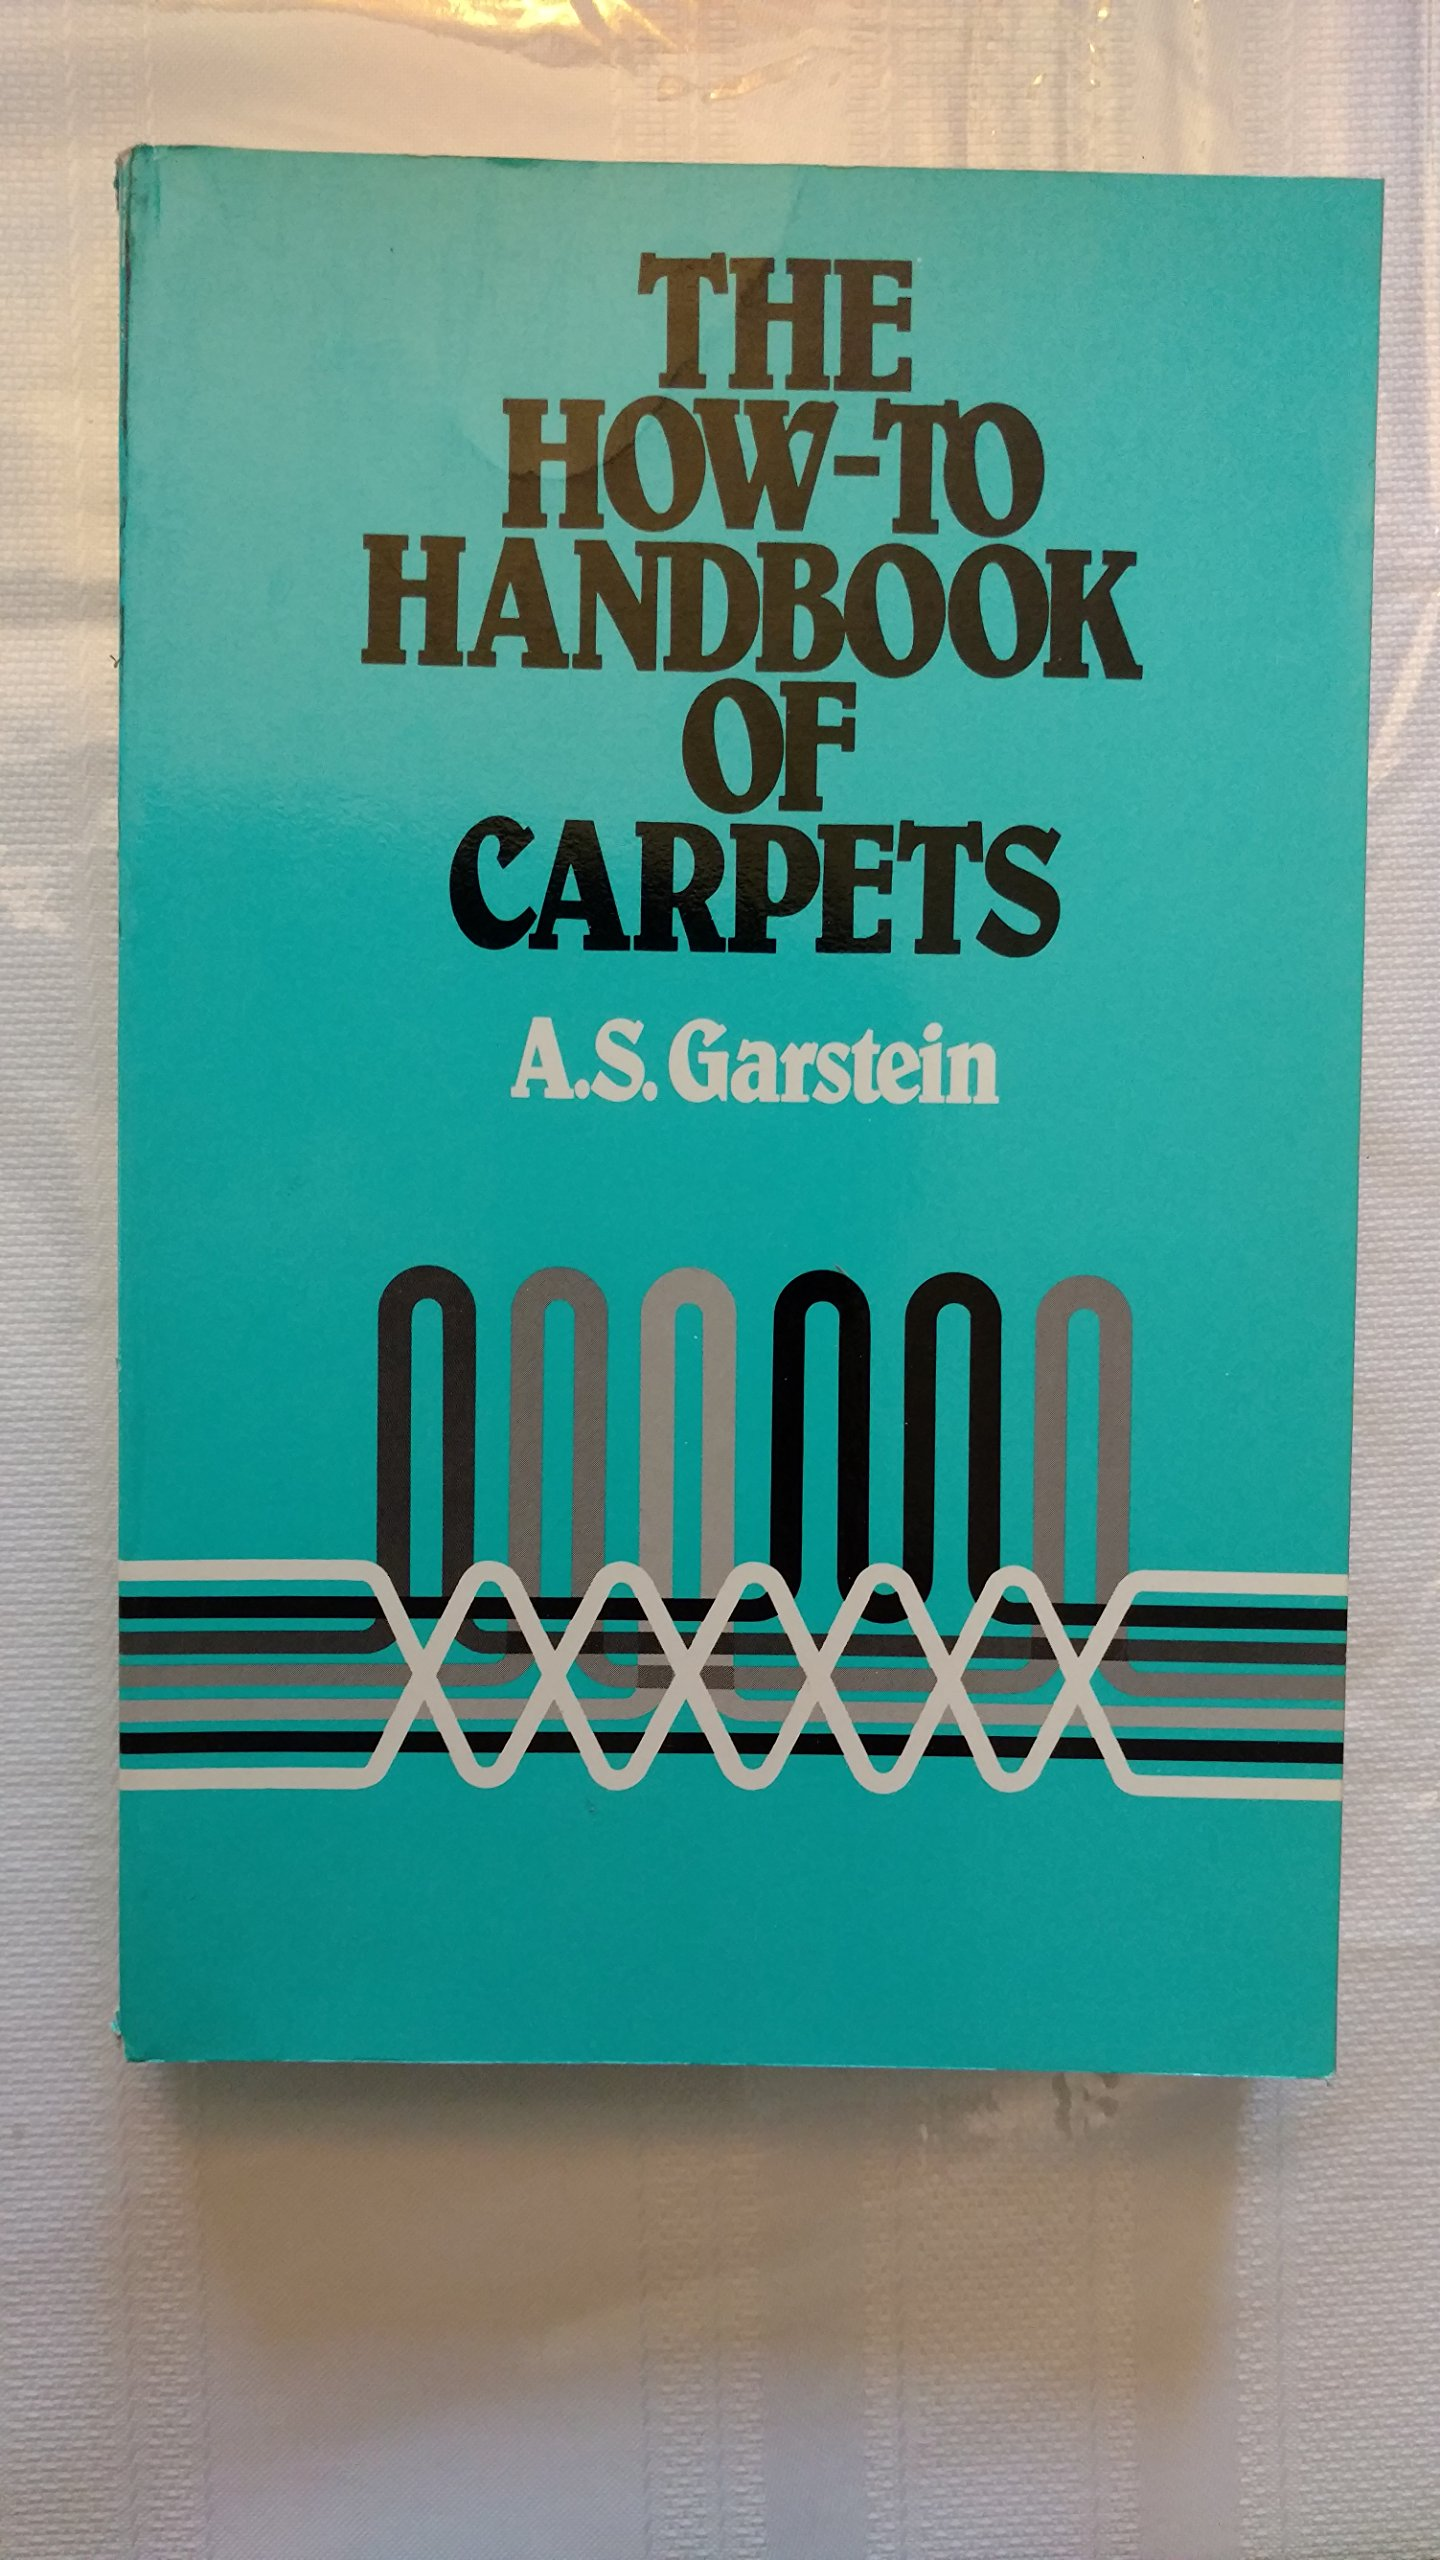 How-to Handbook of Carpets